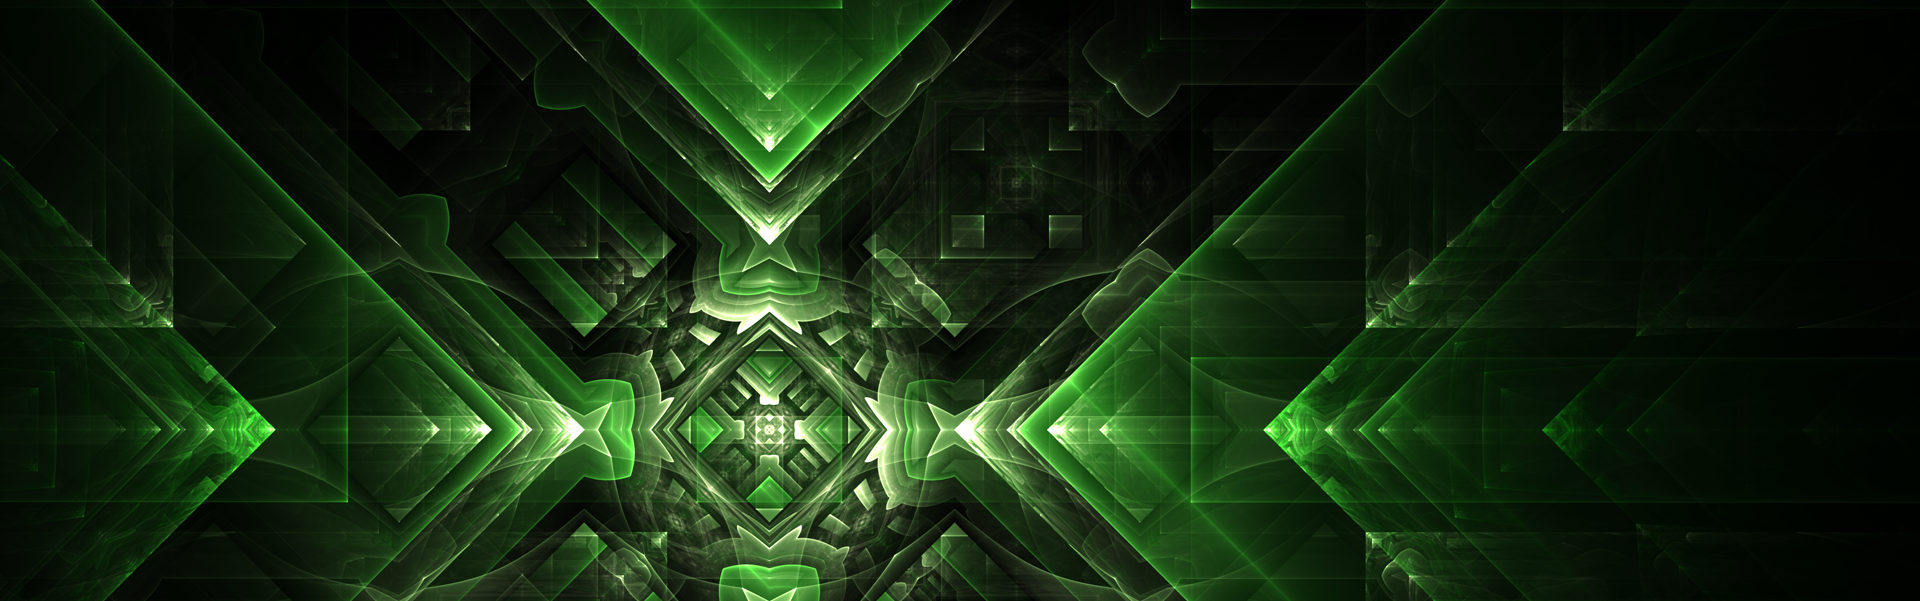 green-fractal-tech-by-zy0rg-slider